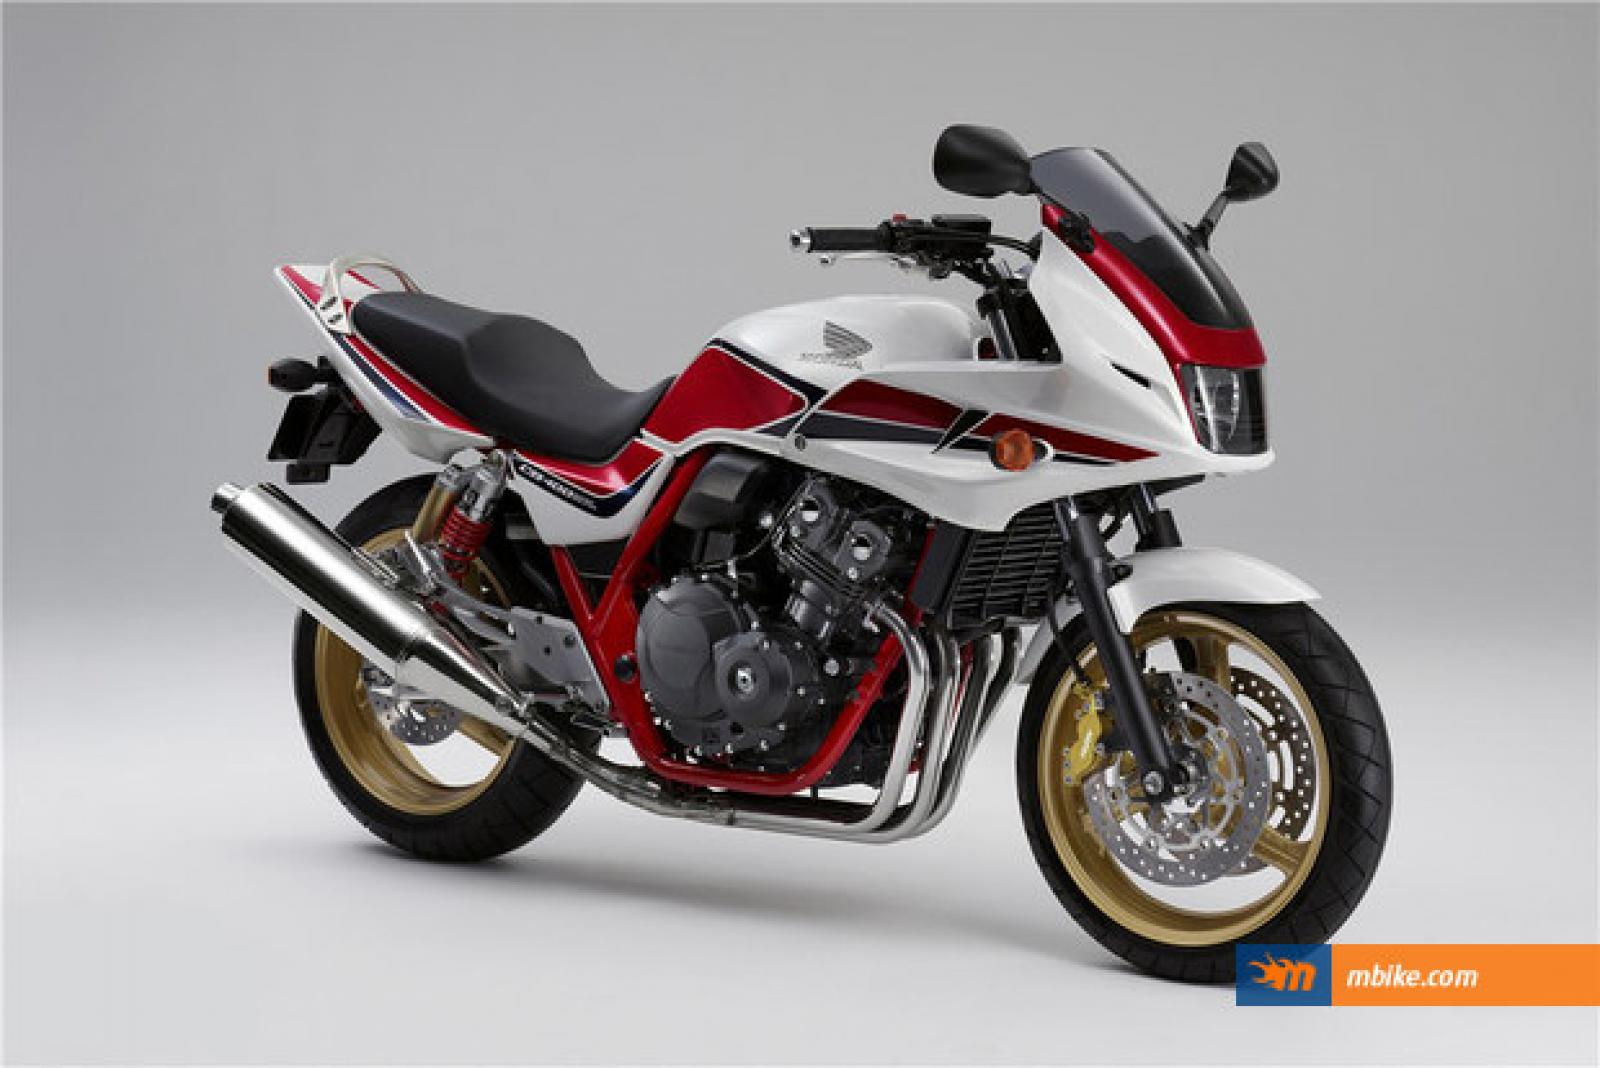 2011 Honda CB400 Super Four ABS #3